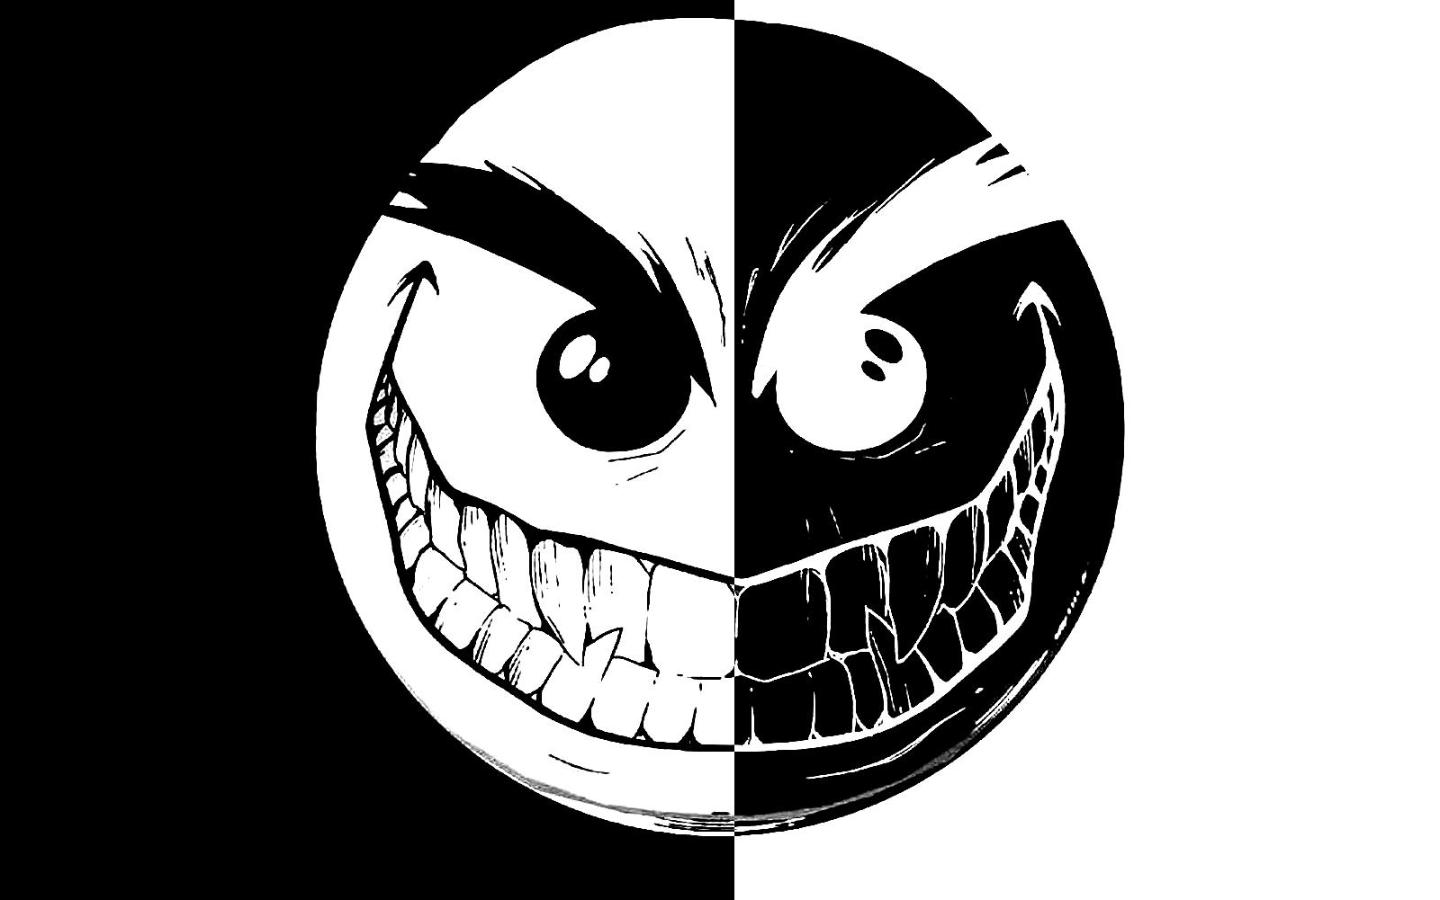 The History of Acid House: Smiley Face History - Good or Evil?